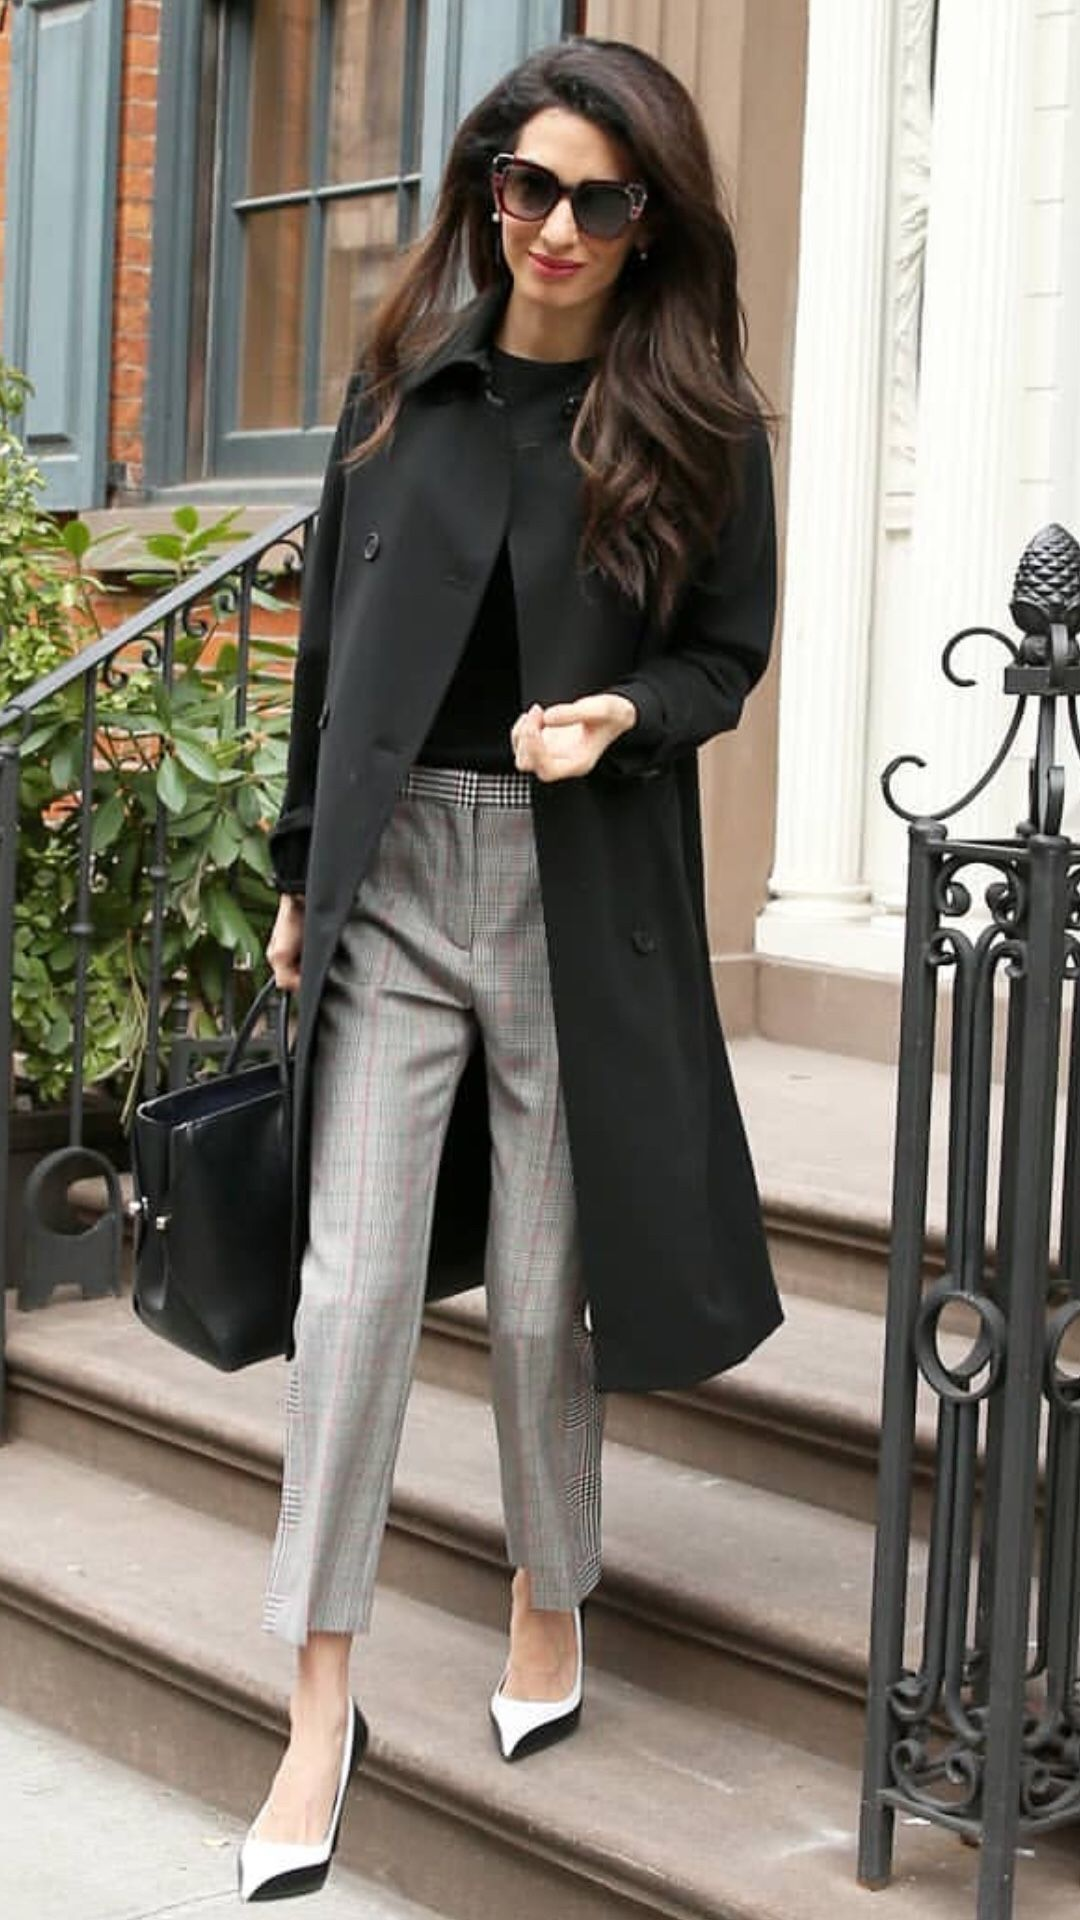 Amal Clooney Spotted Leaving Her Appartment In Soho 12 04 2018